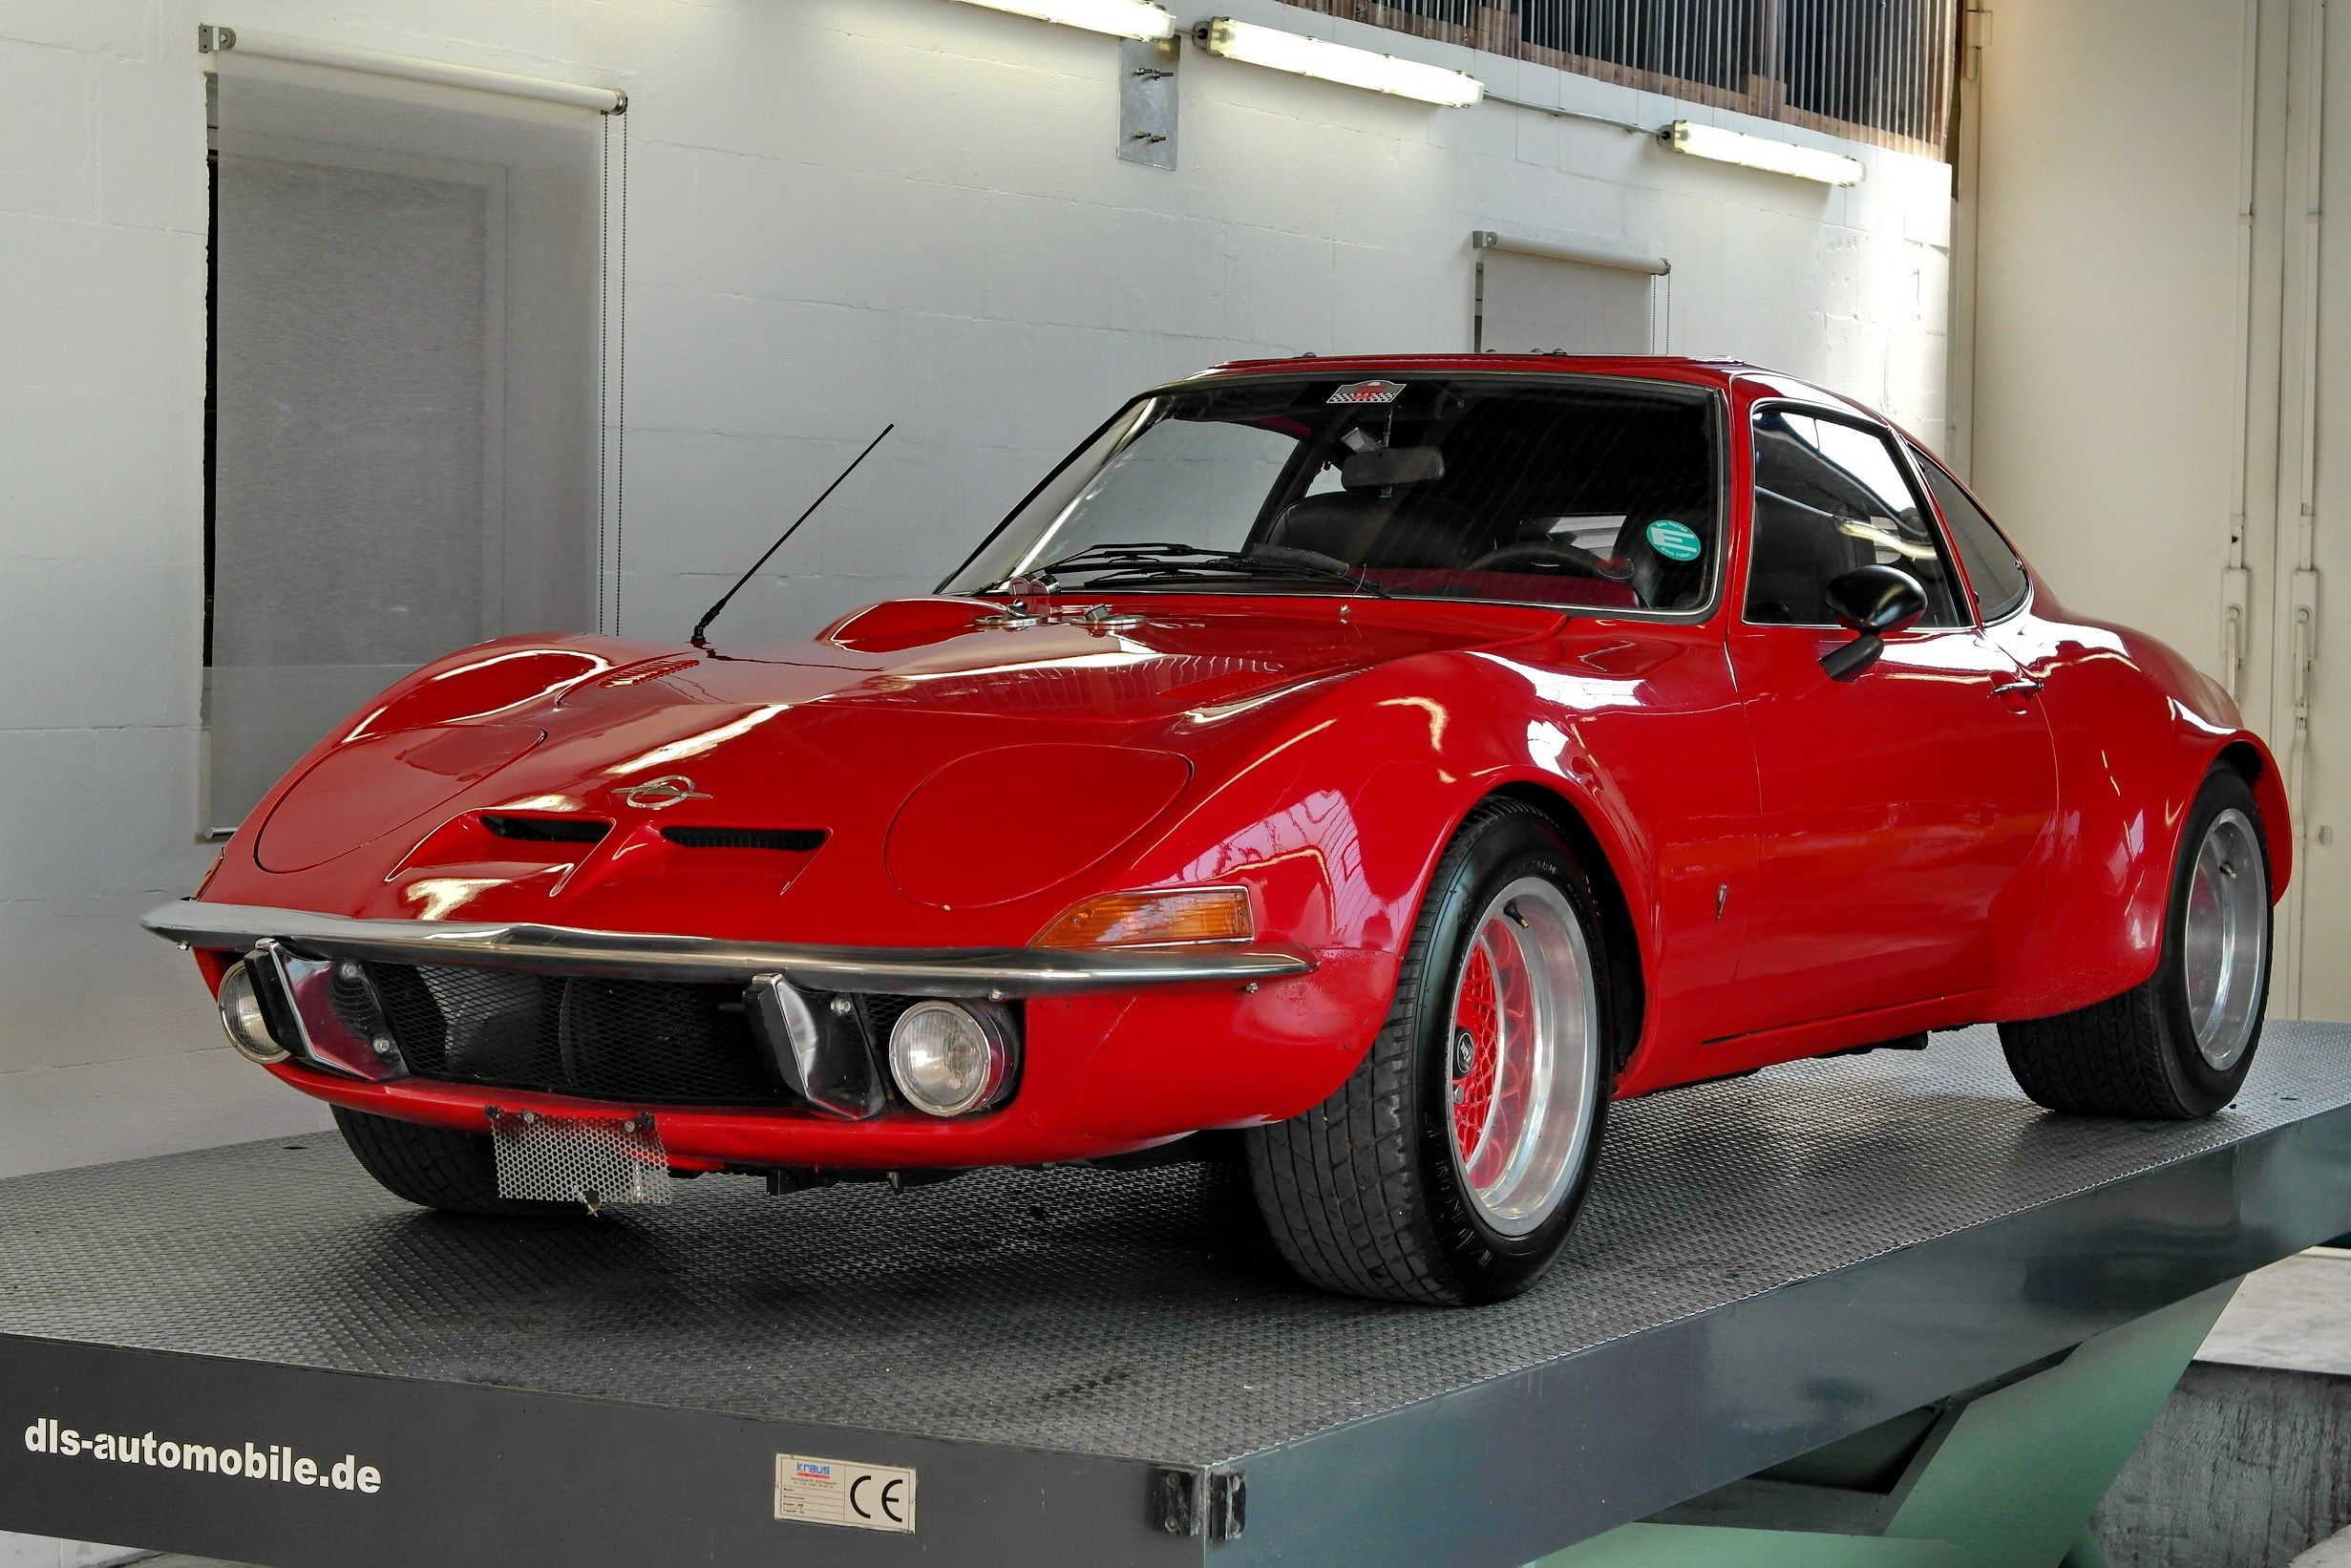 small resolution of opel gt v8 02 dls automobile